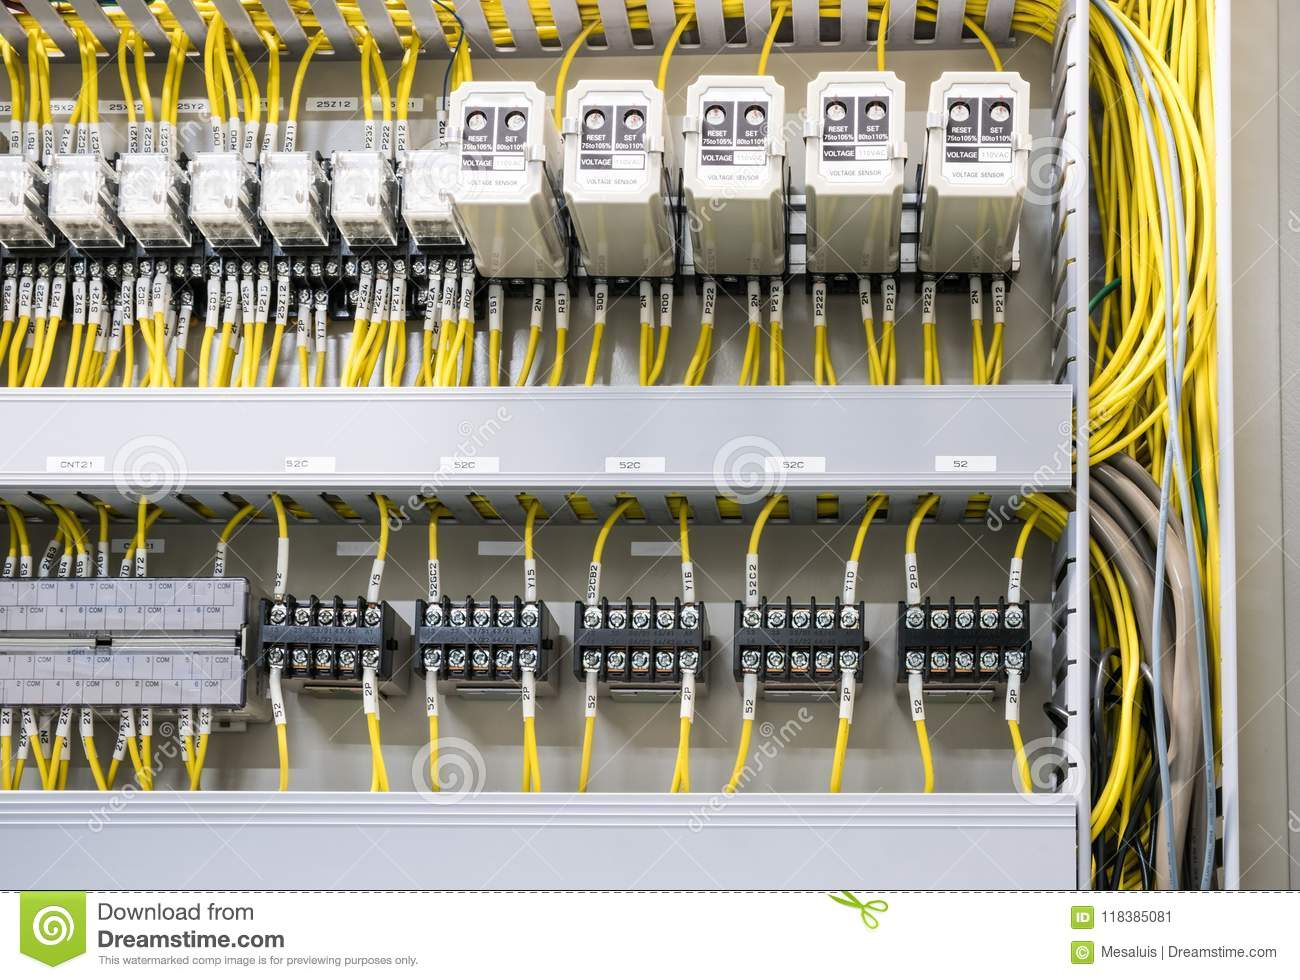 hight resolution of electrical panel at a assembly line factory electricity distribution box wires in electrical cabinet